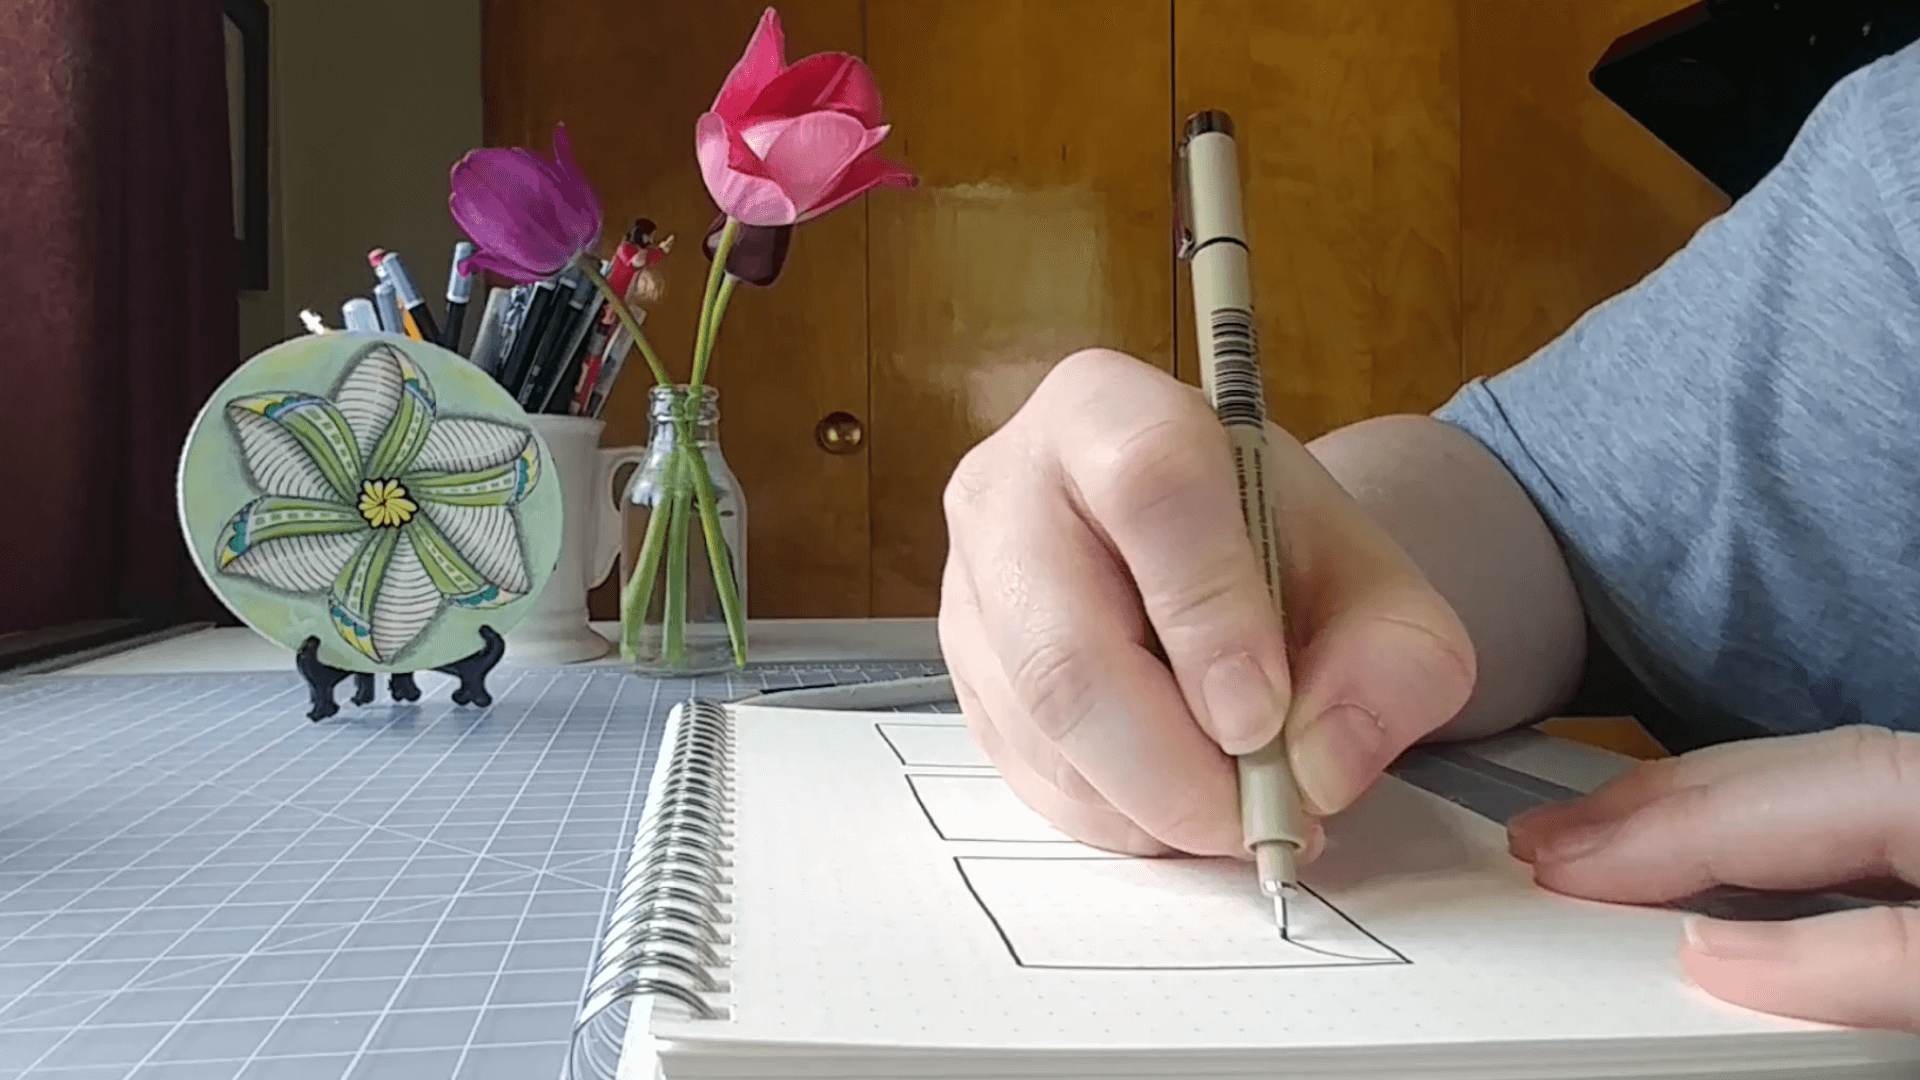 Emily Suess drawing Zentangles at her desk. There are tulips in a small glass vase and a Zentangle Zendala tile in the background.